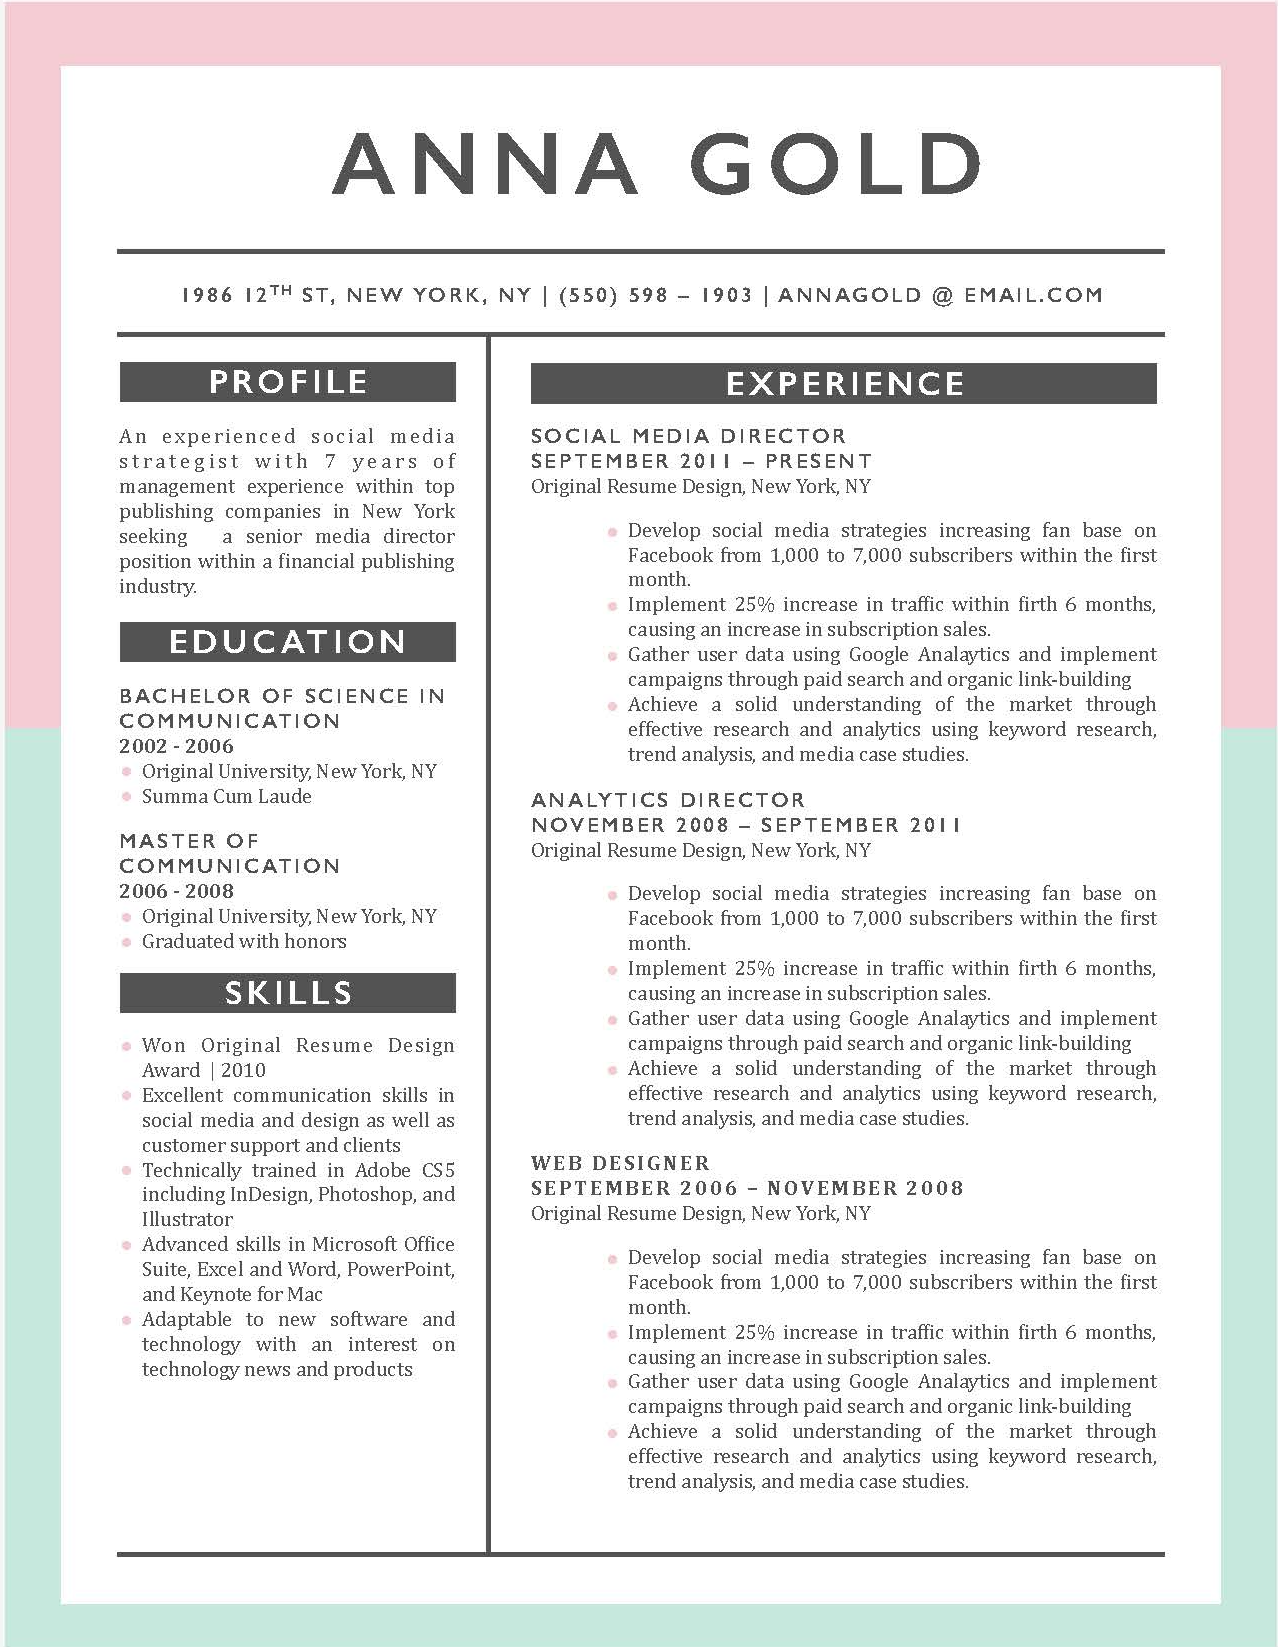 Anna Gold - 5-15 Best Creative Resume Templates of 2018